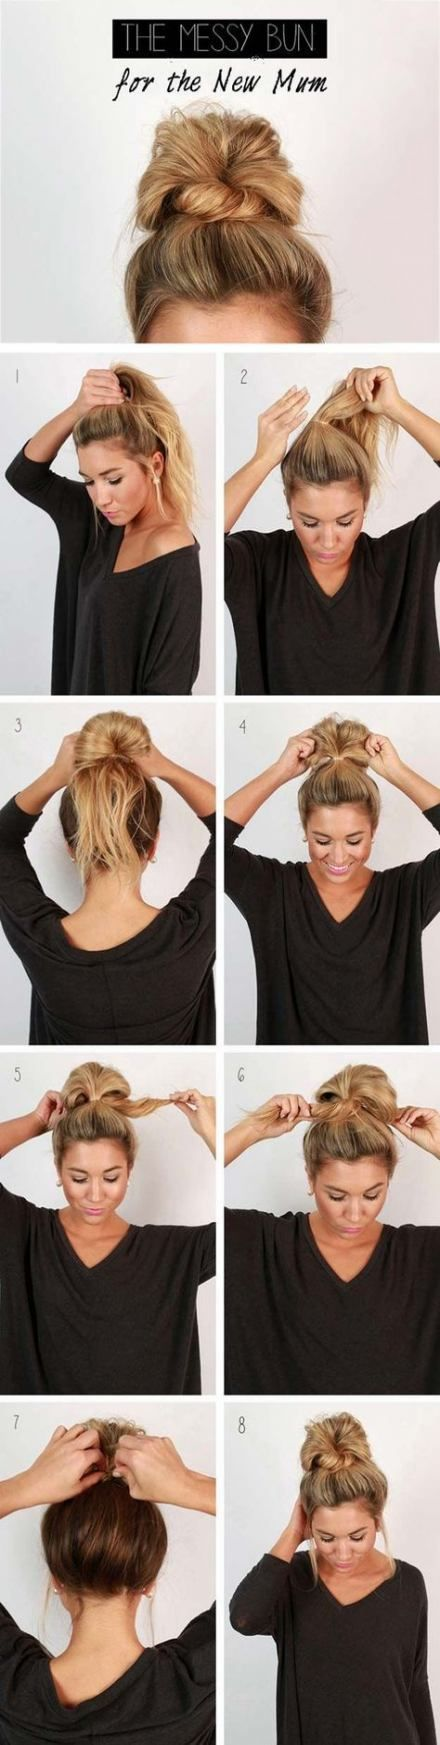 56+ Trendy Ideas wedding hairstyles for long hair updo lazy girl #hair #wedding …, #Girl